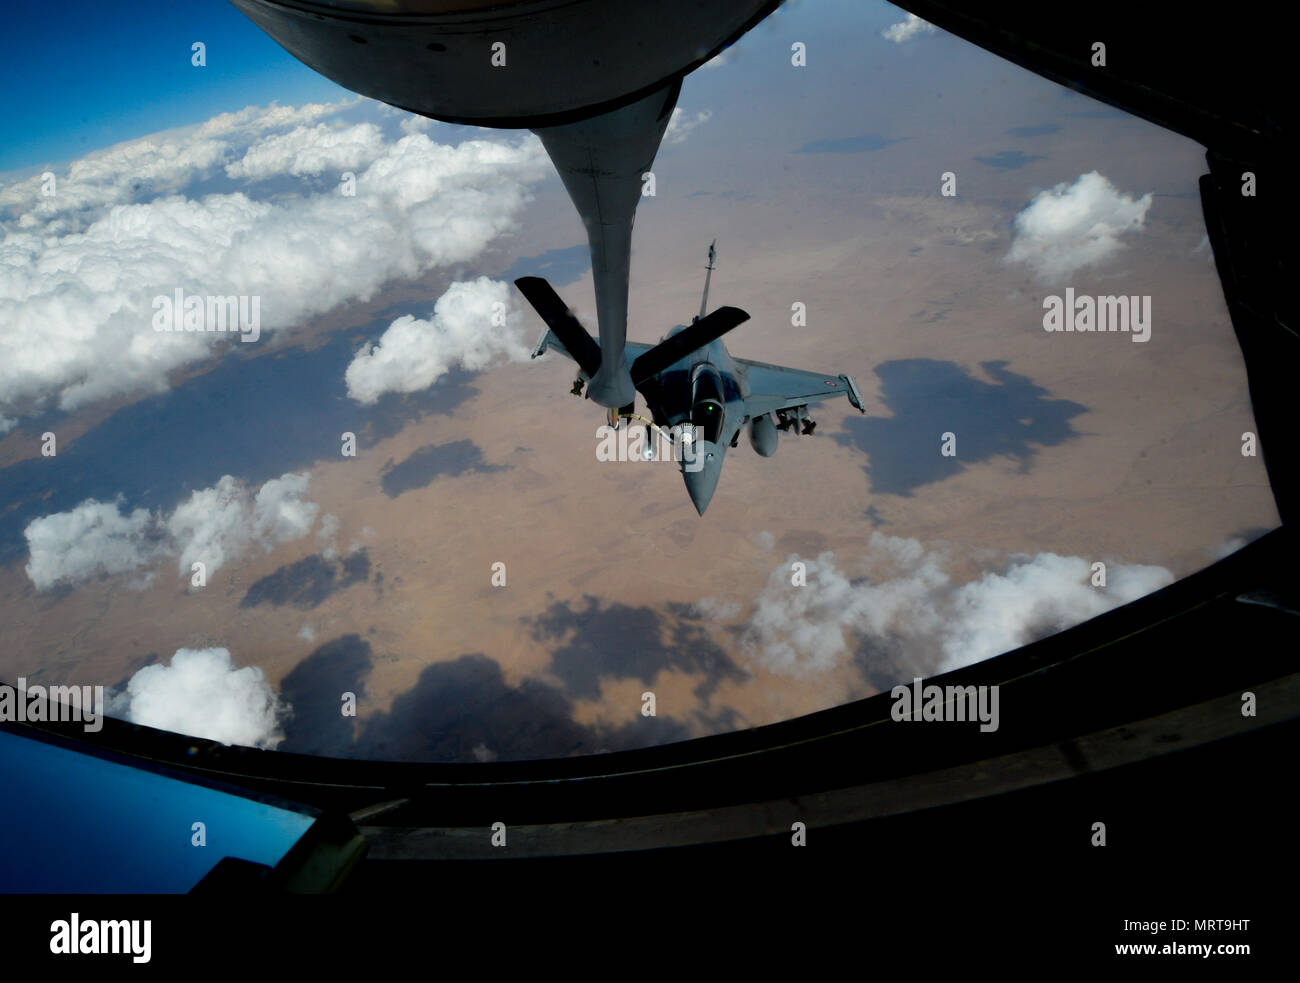 A French air force Rafale receives fuel from a 340th Expeditionary Air Refueling Squadron KC-135 Stratotanker in support of Operation Inherent Resolve, July 1, 2017.Rafale is a French twin-engine, canard delta wing, multirole fighter aircraft with a wide range of weapons. The Rafale is intended to perform air supremacy, interdiction, aerial reconnaissance, ground support, in-depth strike and anti-ship strike missions. (U.S. Air Force photo by Staff Sgt. Michael Battles) - Stock Image